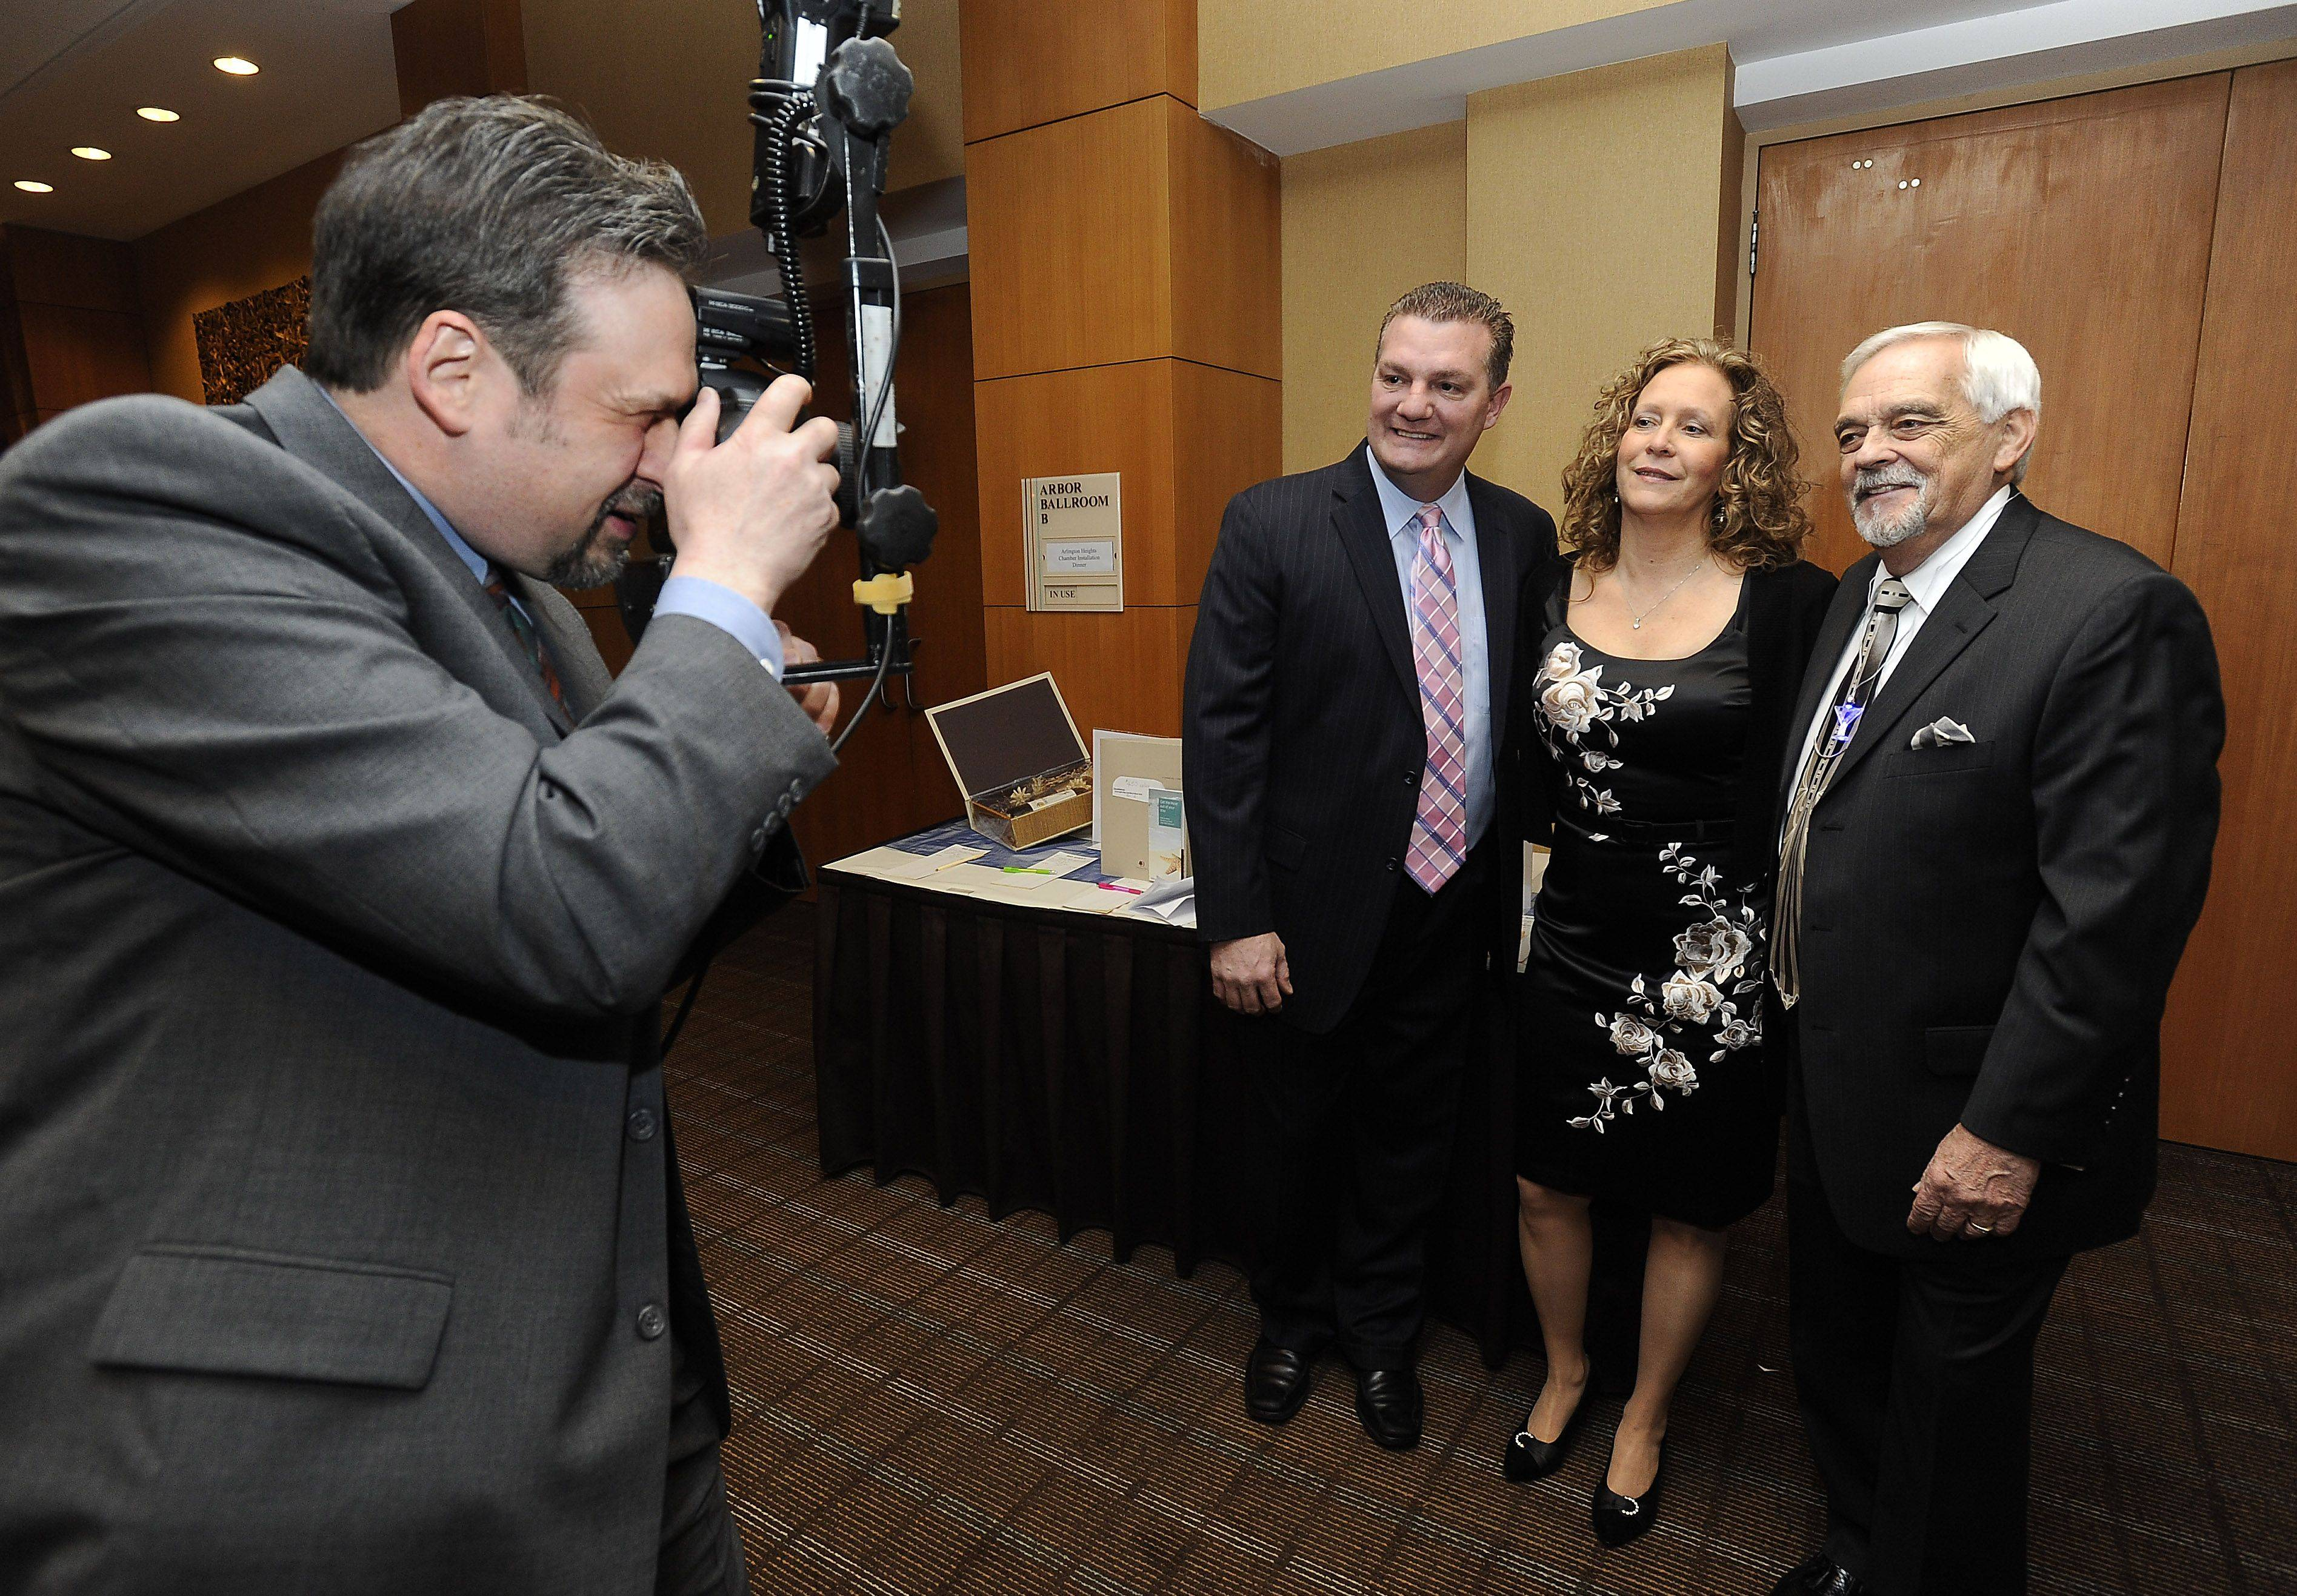 Photographer Steve Sampson shoots a group picture of past Arlington Heights Chamber of Commerce presidents Joe Favia, 2010, and Cindee Manaves, 2011, with the new president, Cliff Higley, at Higley's installation dinner Thursday.